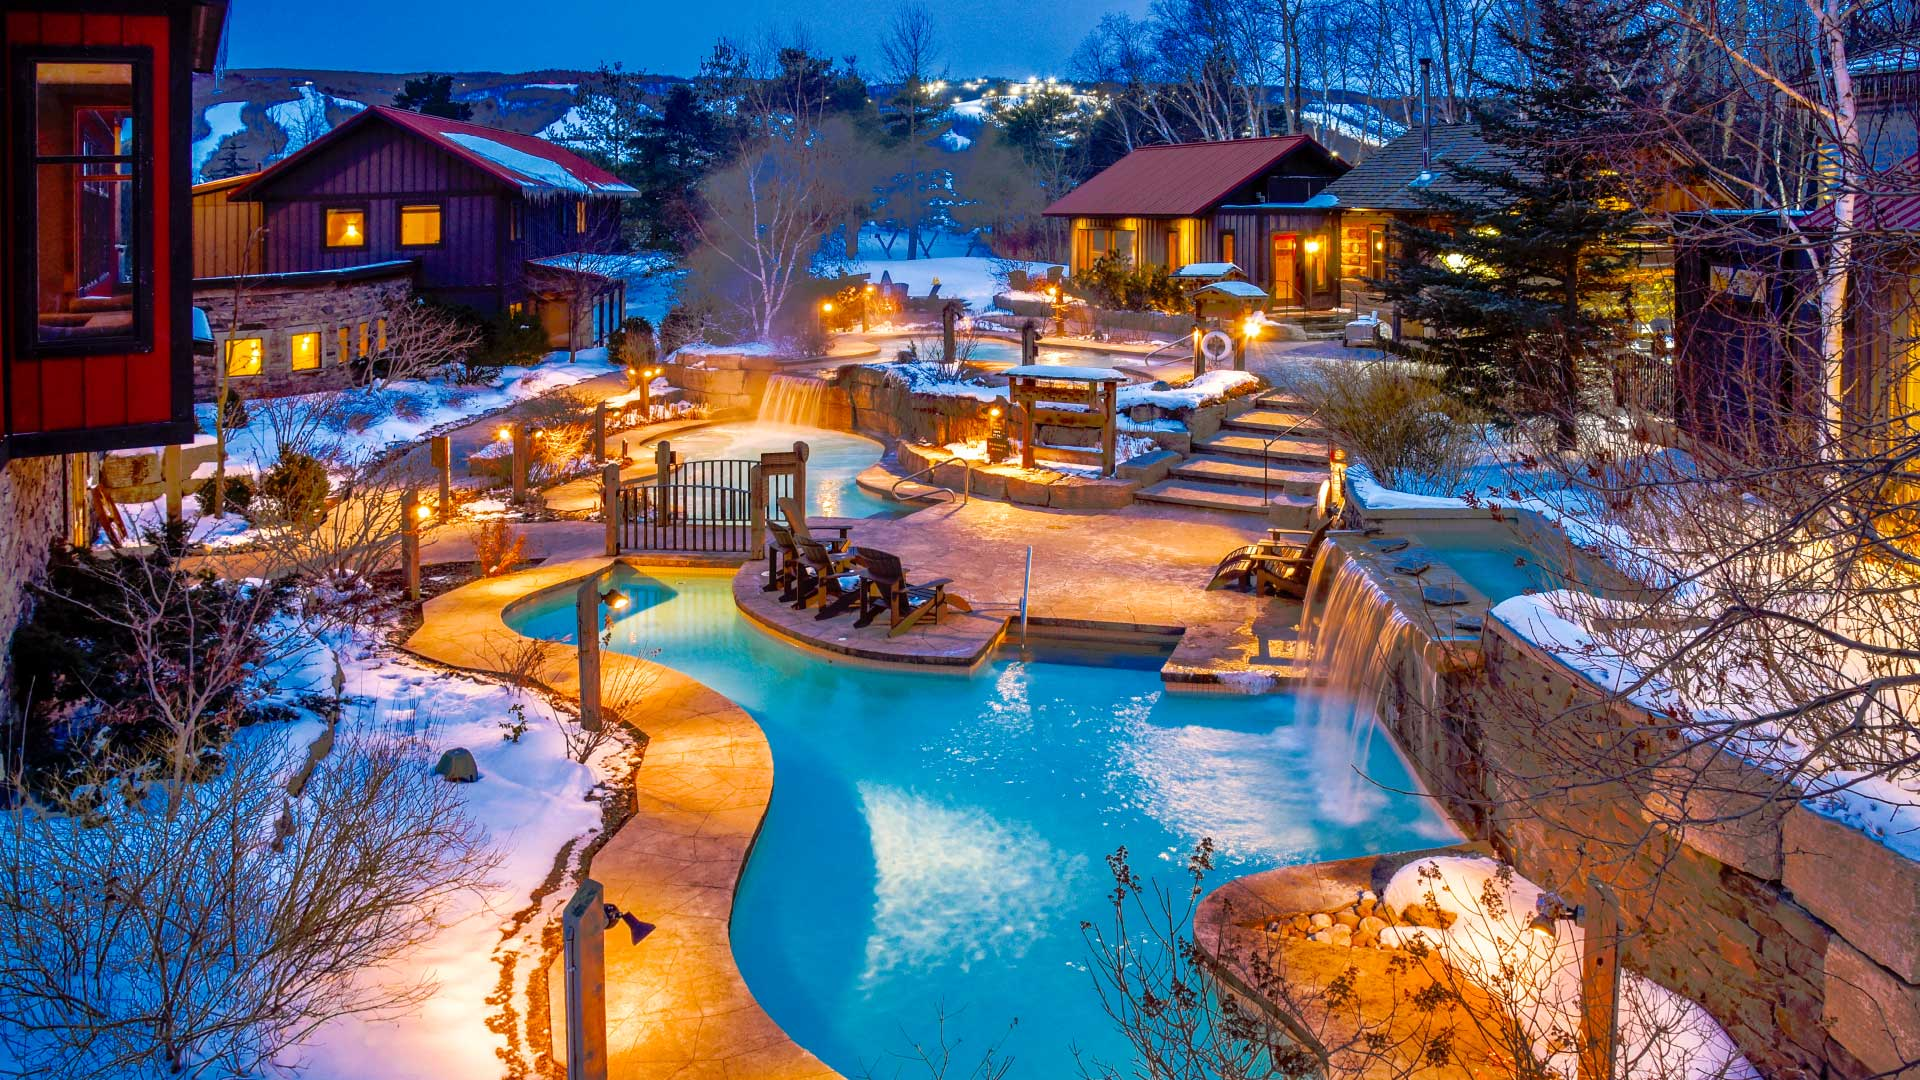 8 Min To Blue Steps To Beach Hot Tub Pool Guest Suites For Rent In Collingwood Ontario Canada